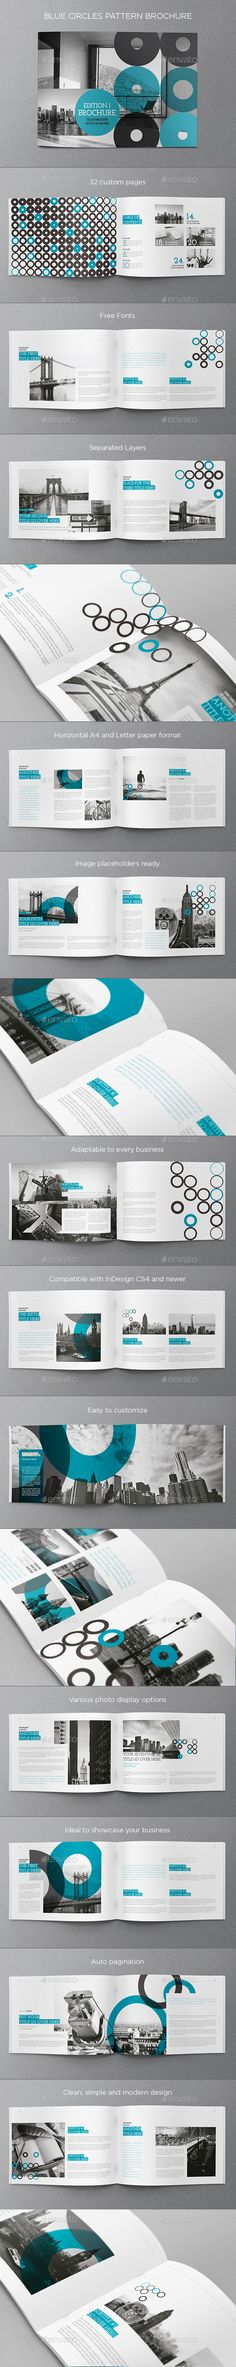 Blue Circles Pattern Brochure Template InDesign INDD #design Download: http://graphicriver.net/item/blue-circles-pattern-brochure/14060572?ref=ksioks